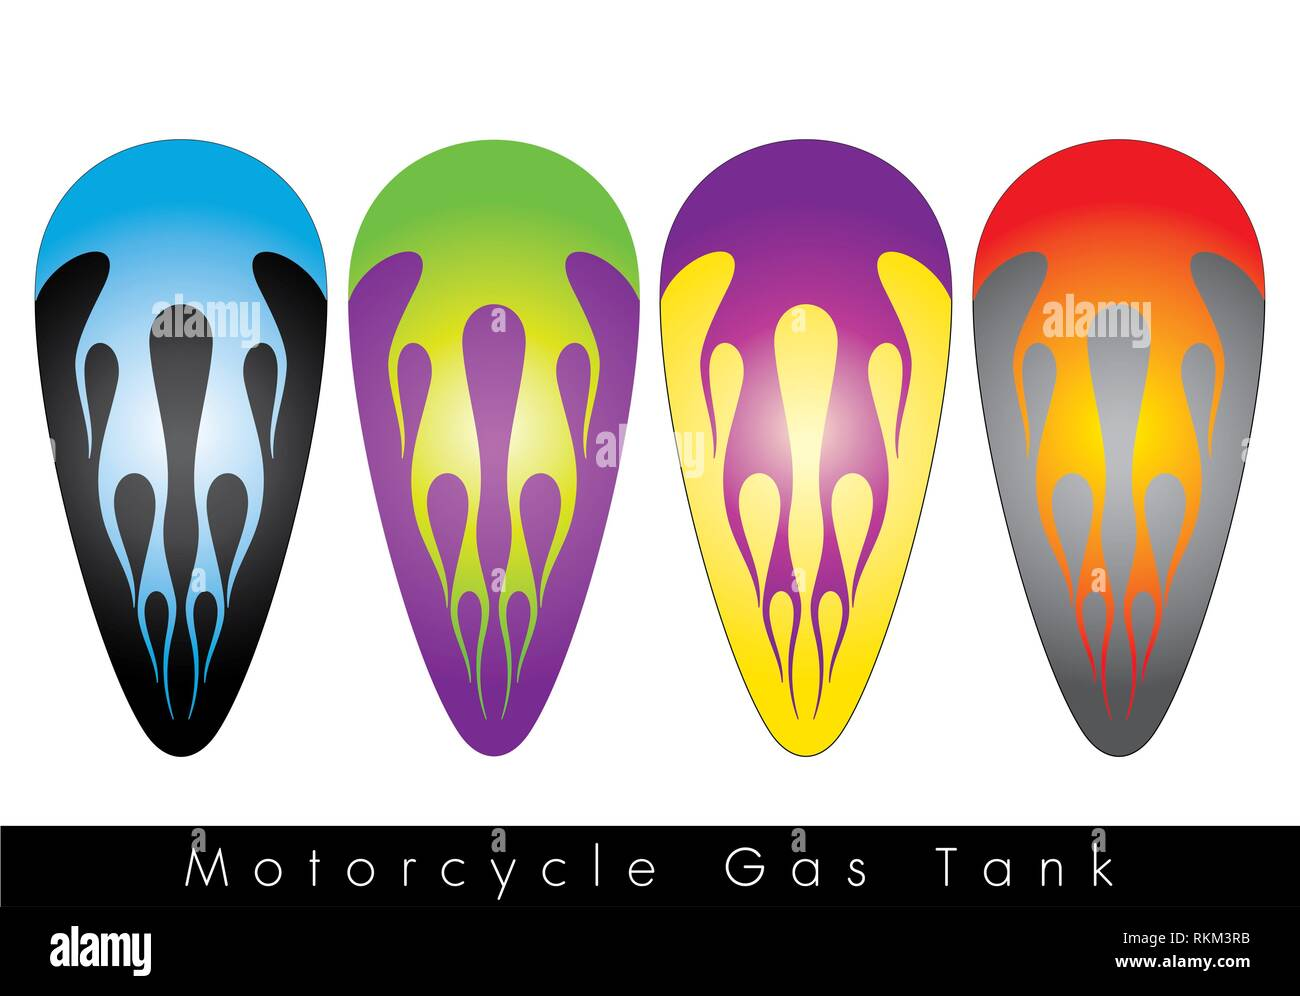 Custom Paint Design Motorcycle High Resolution Stock Photography And Images Alamy